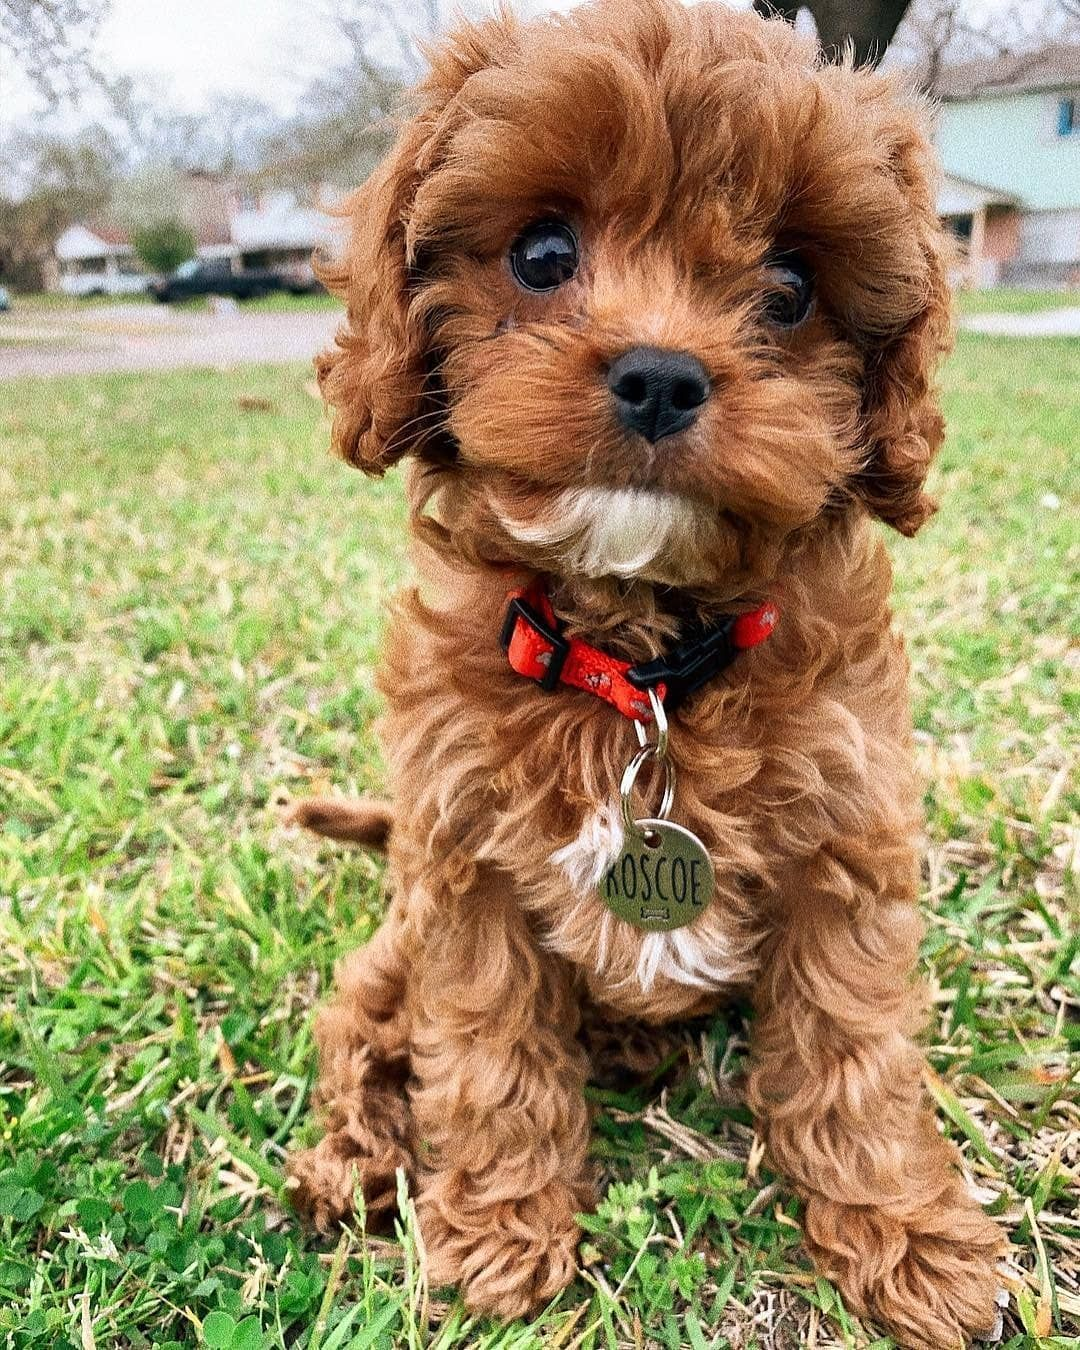 Cavapoos Are A Result Of Breeding A Cavalier King Charles Spaniel With A Poodle Also Known As A Cavoodle The Poodle Part In 2020 Cavapoo Puppies Puppy Breeds Cavapoo